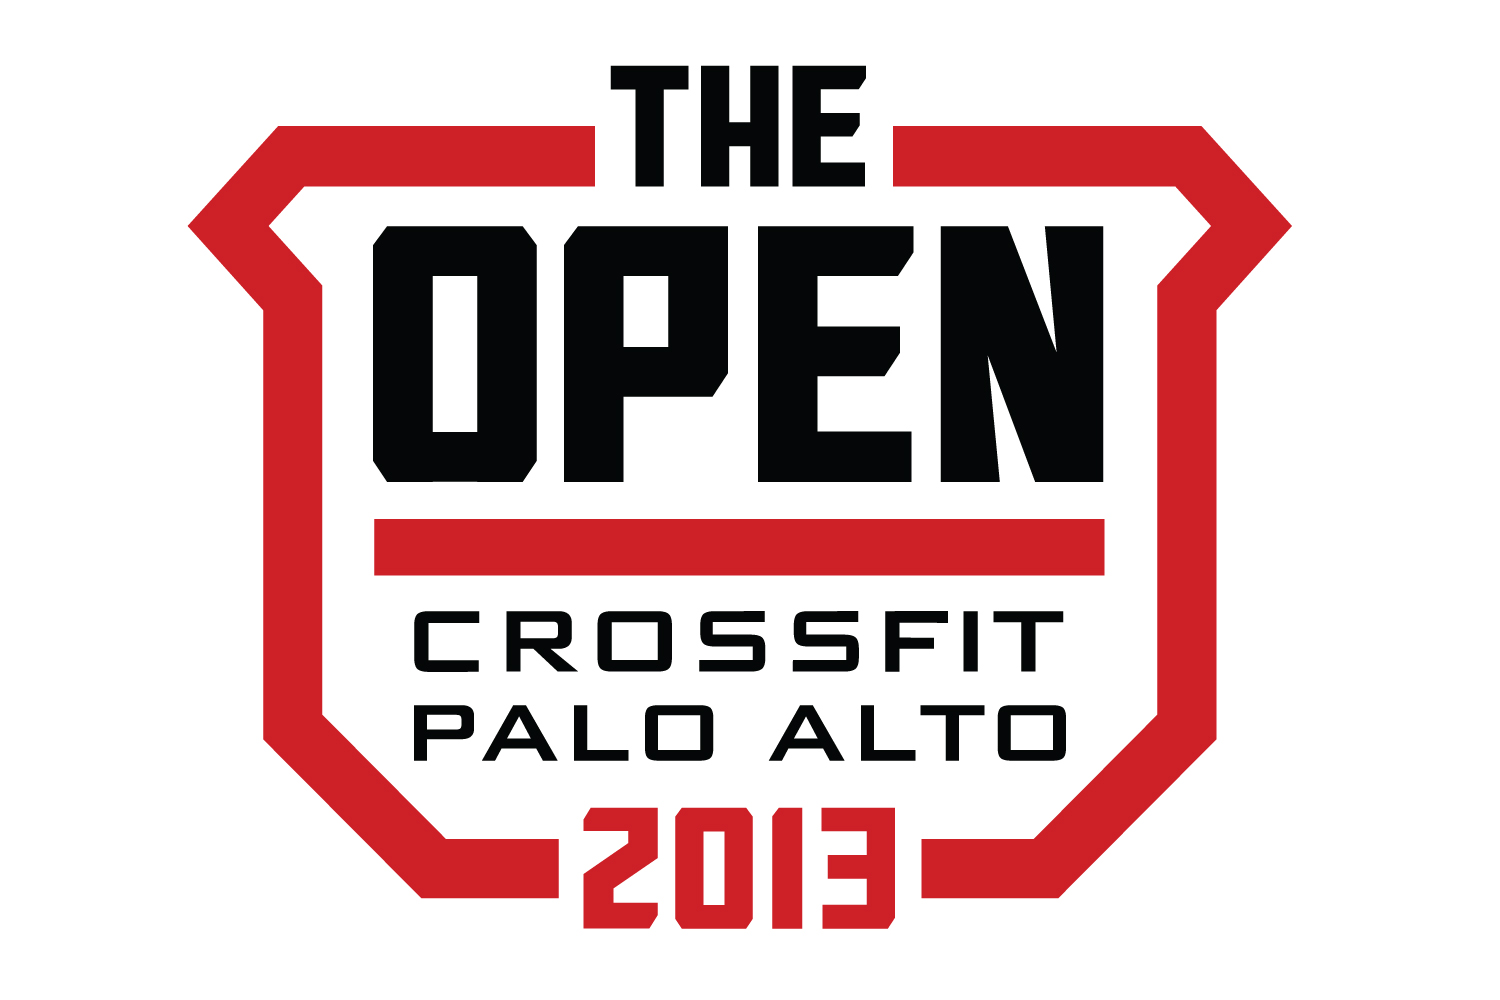 The 2015 CrossFit Open at CrossFit Palo Alto